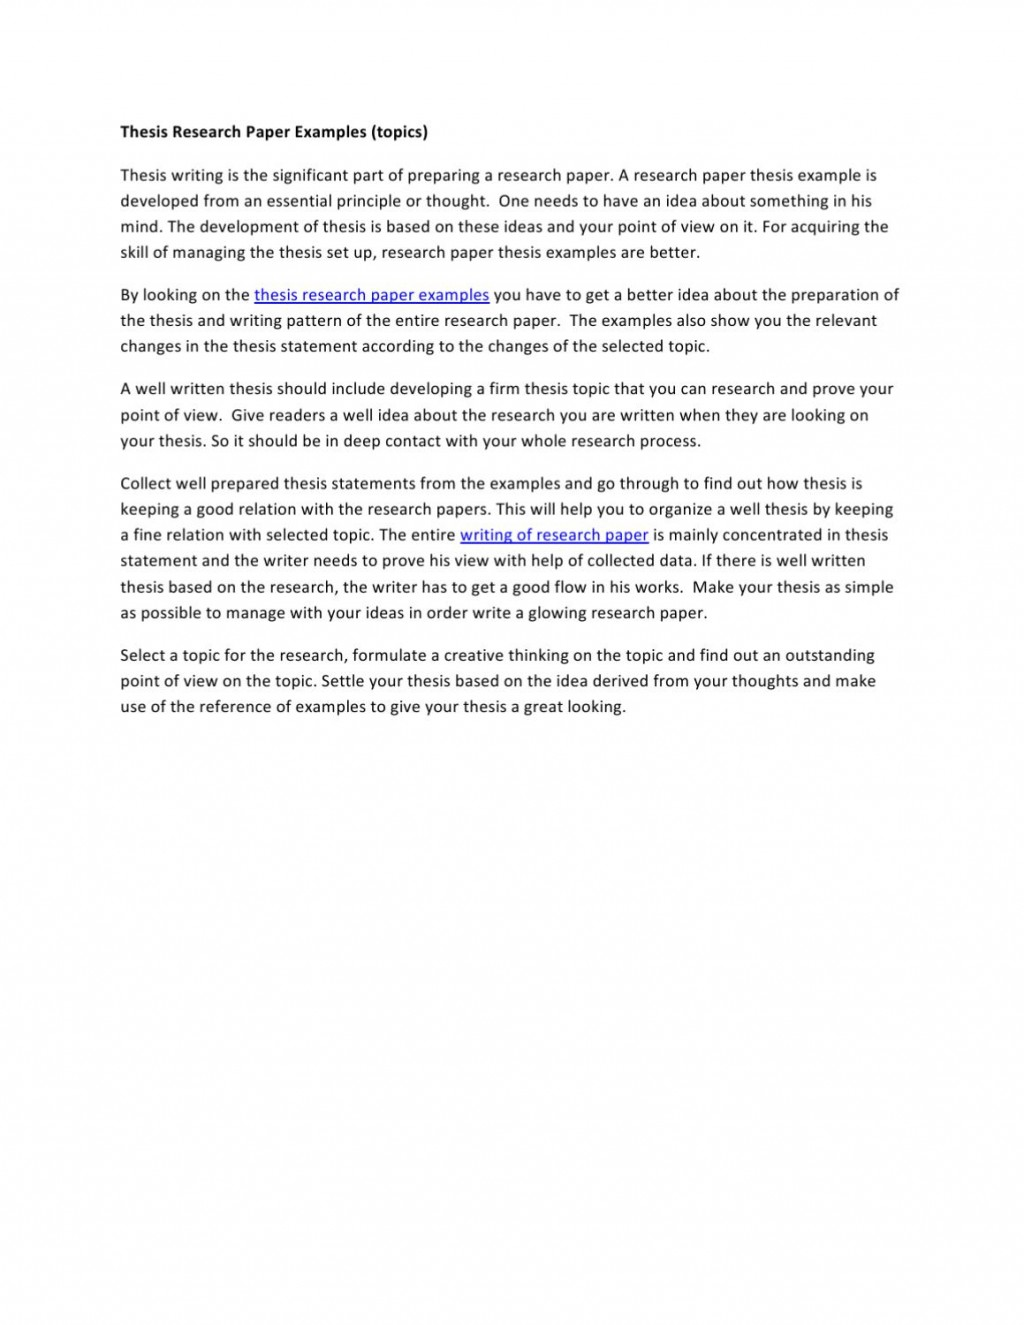 028 Ideas For Research Paper Page 1 Shocking A Topics Writing Good Social Psychology Large